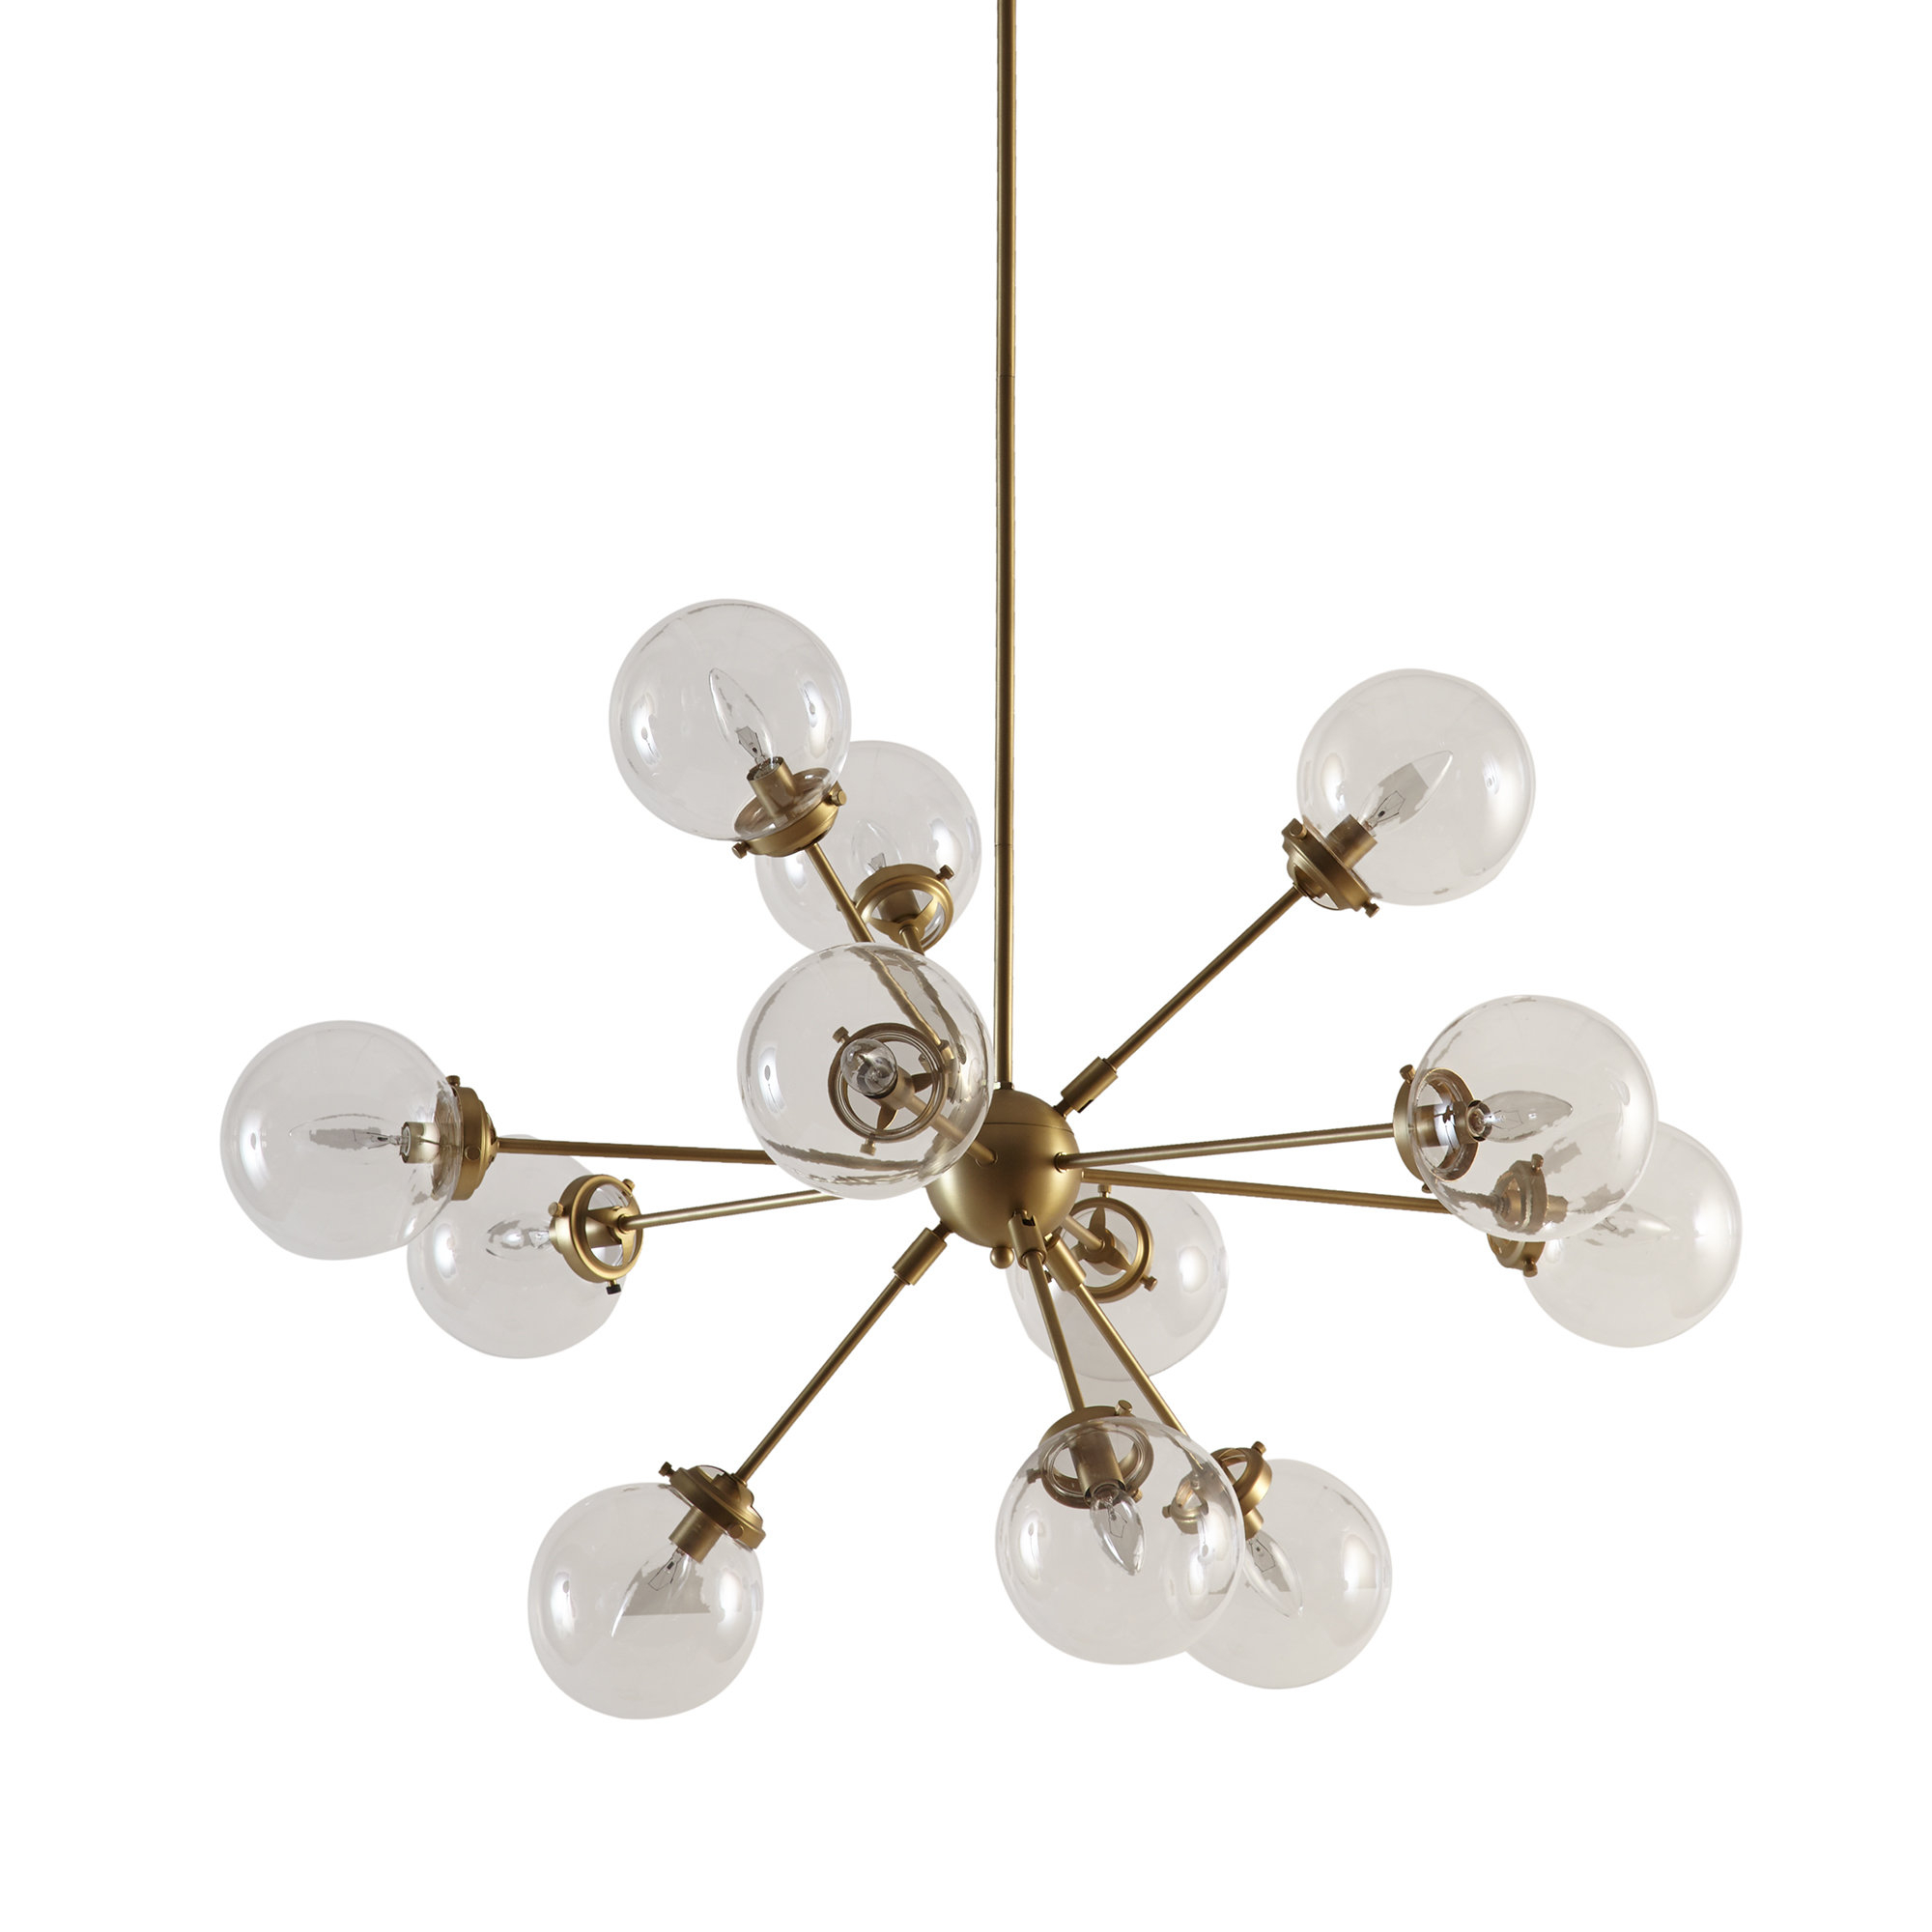 Eastbourne 6 Light Unique / Statement Chandeliers Throughout 2019 Modern & Contemporary Gold Geometric Light Fixture (View 20 of 25)